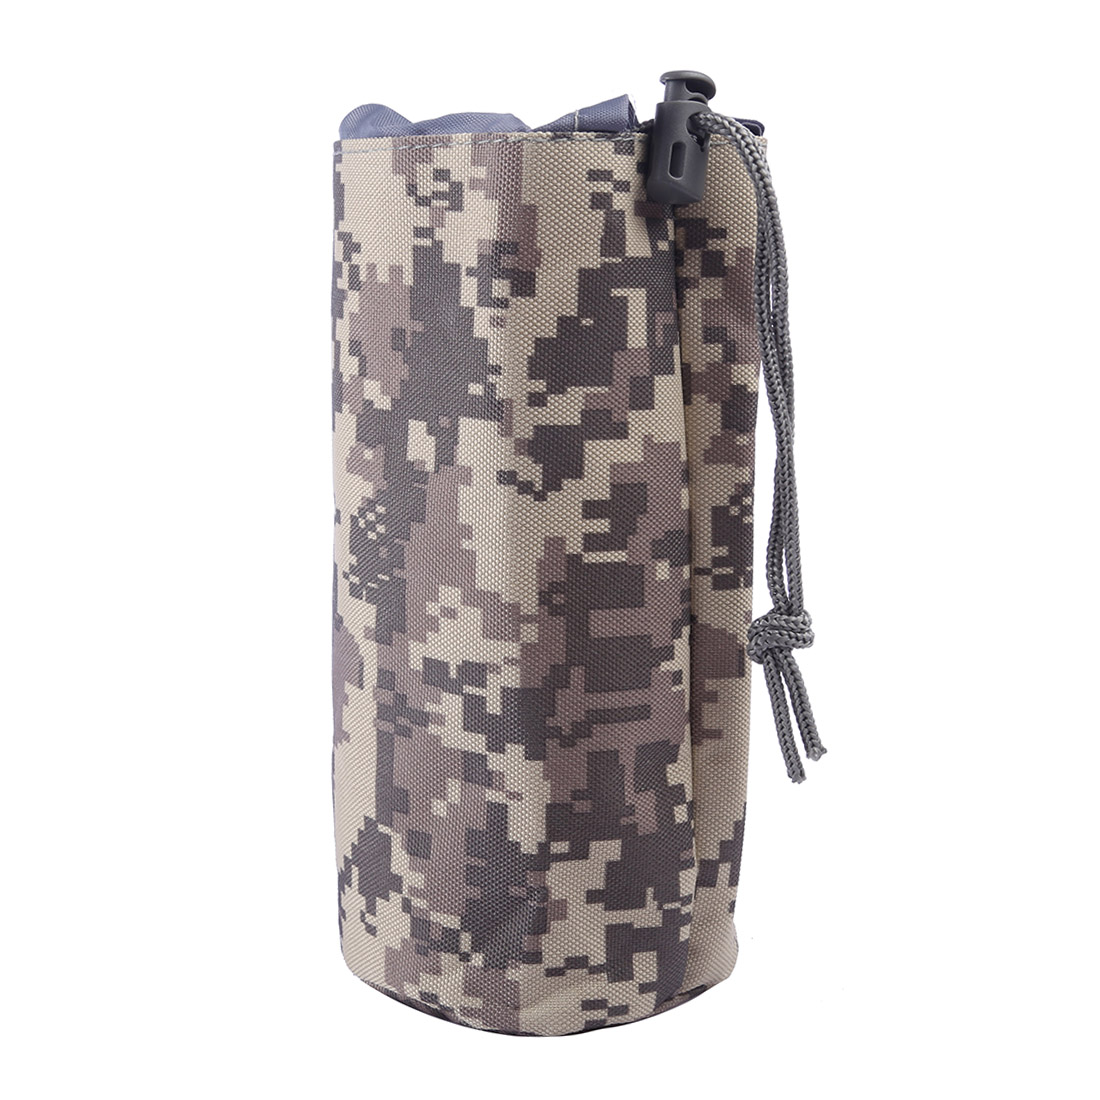 Surwish Molle Multi-functional Portable Bottle Protector Sleeve For Nerf Or For Airsoft Outdoor Activity - ACU Camouflage